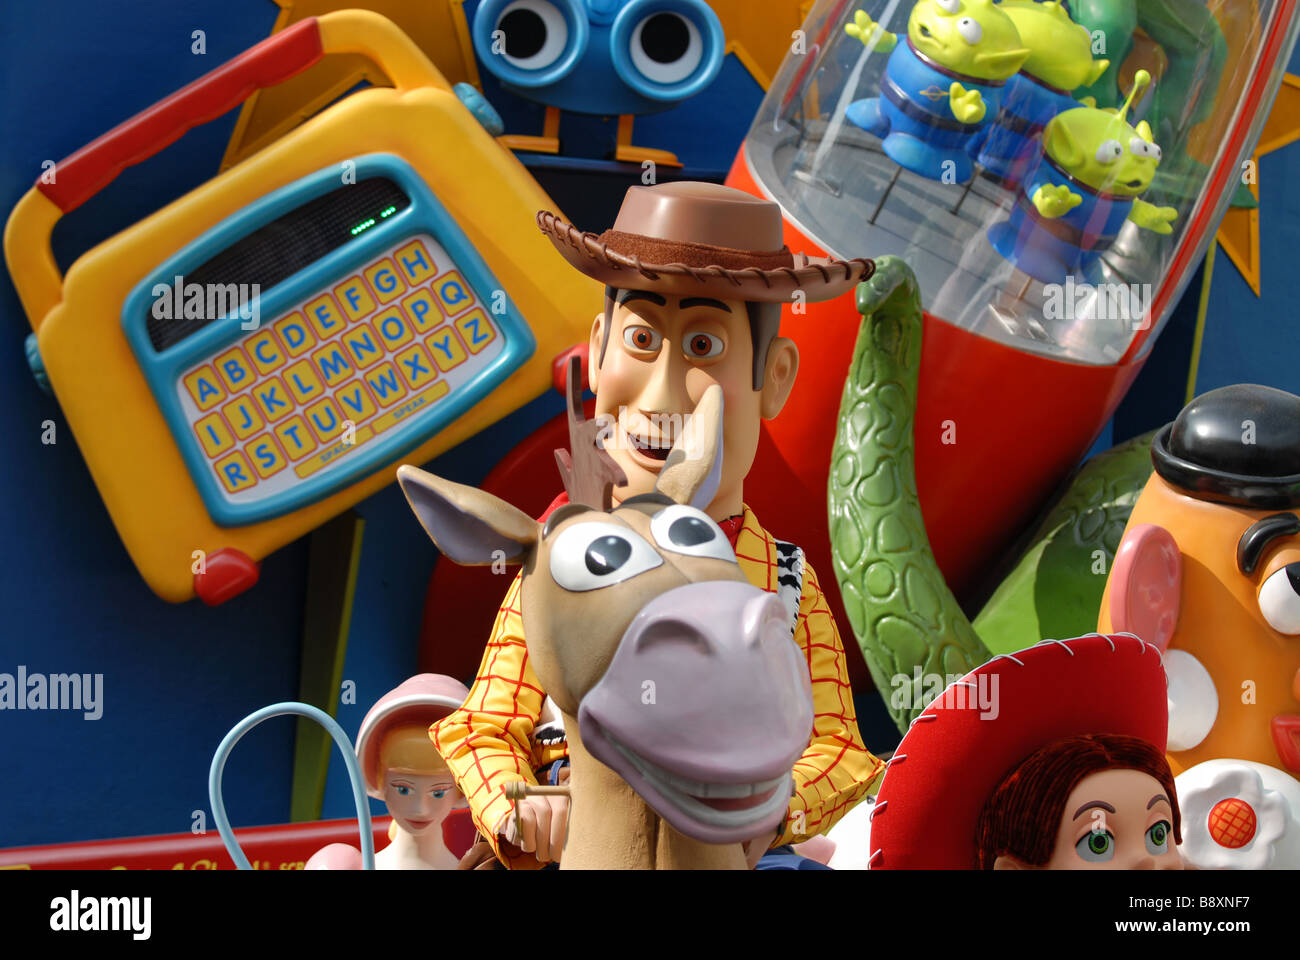 Woody from toy story - Stock Image